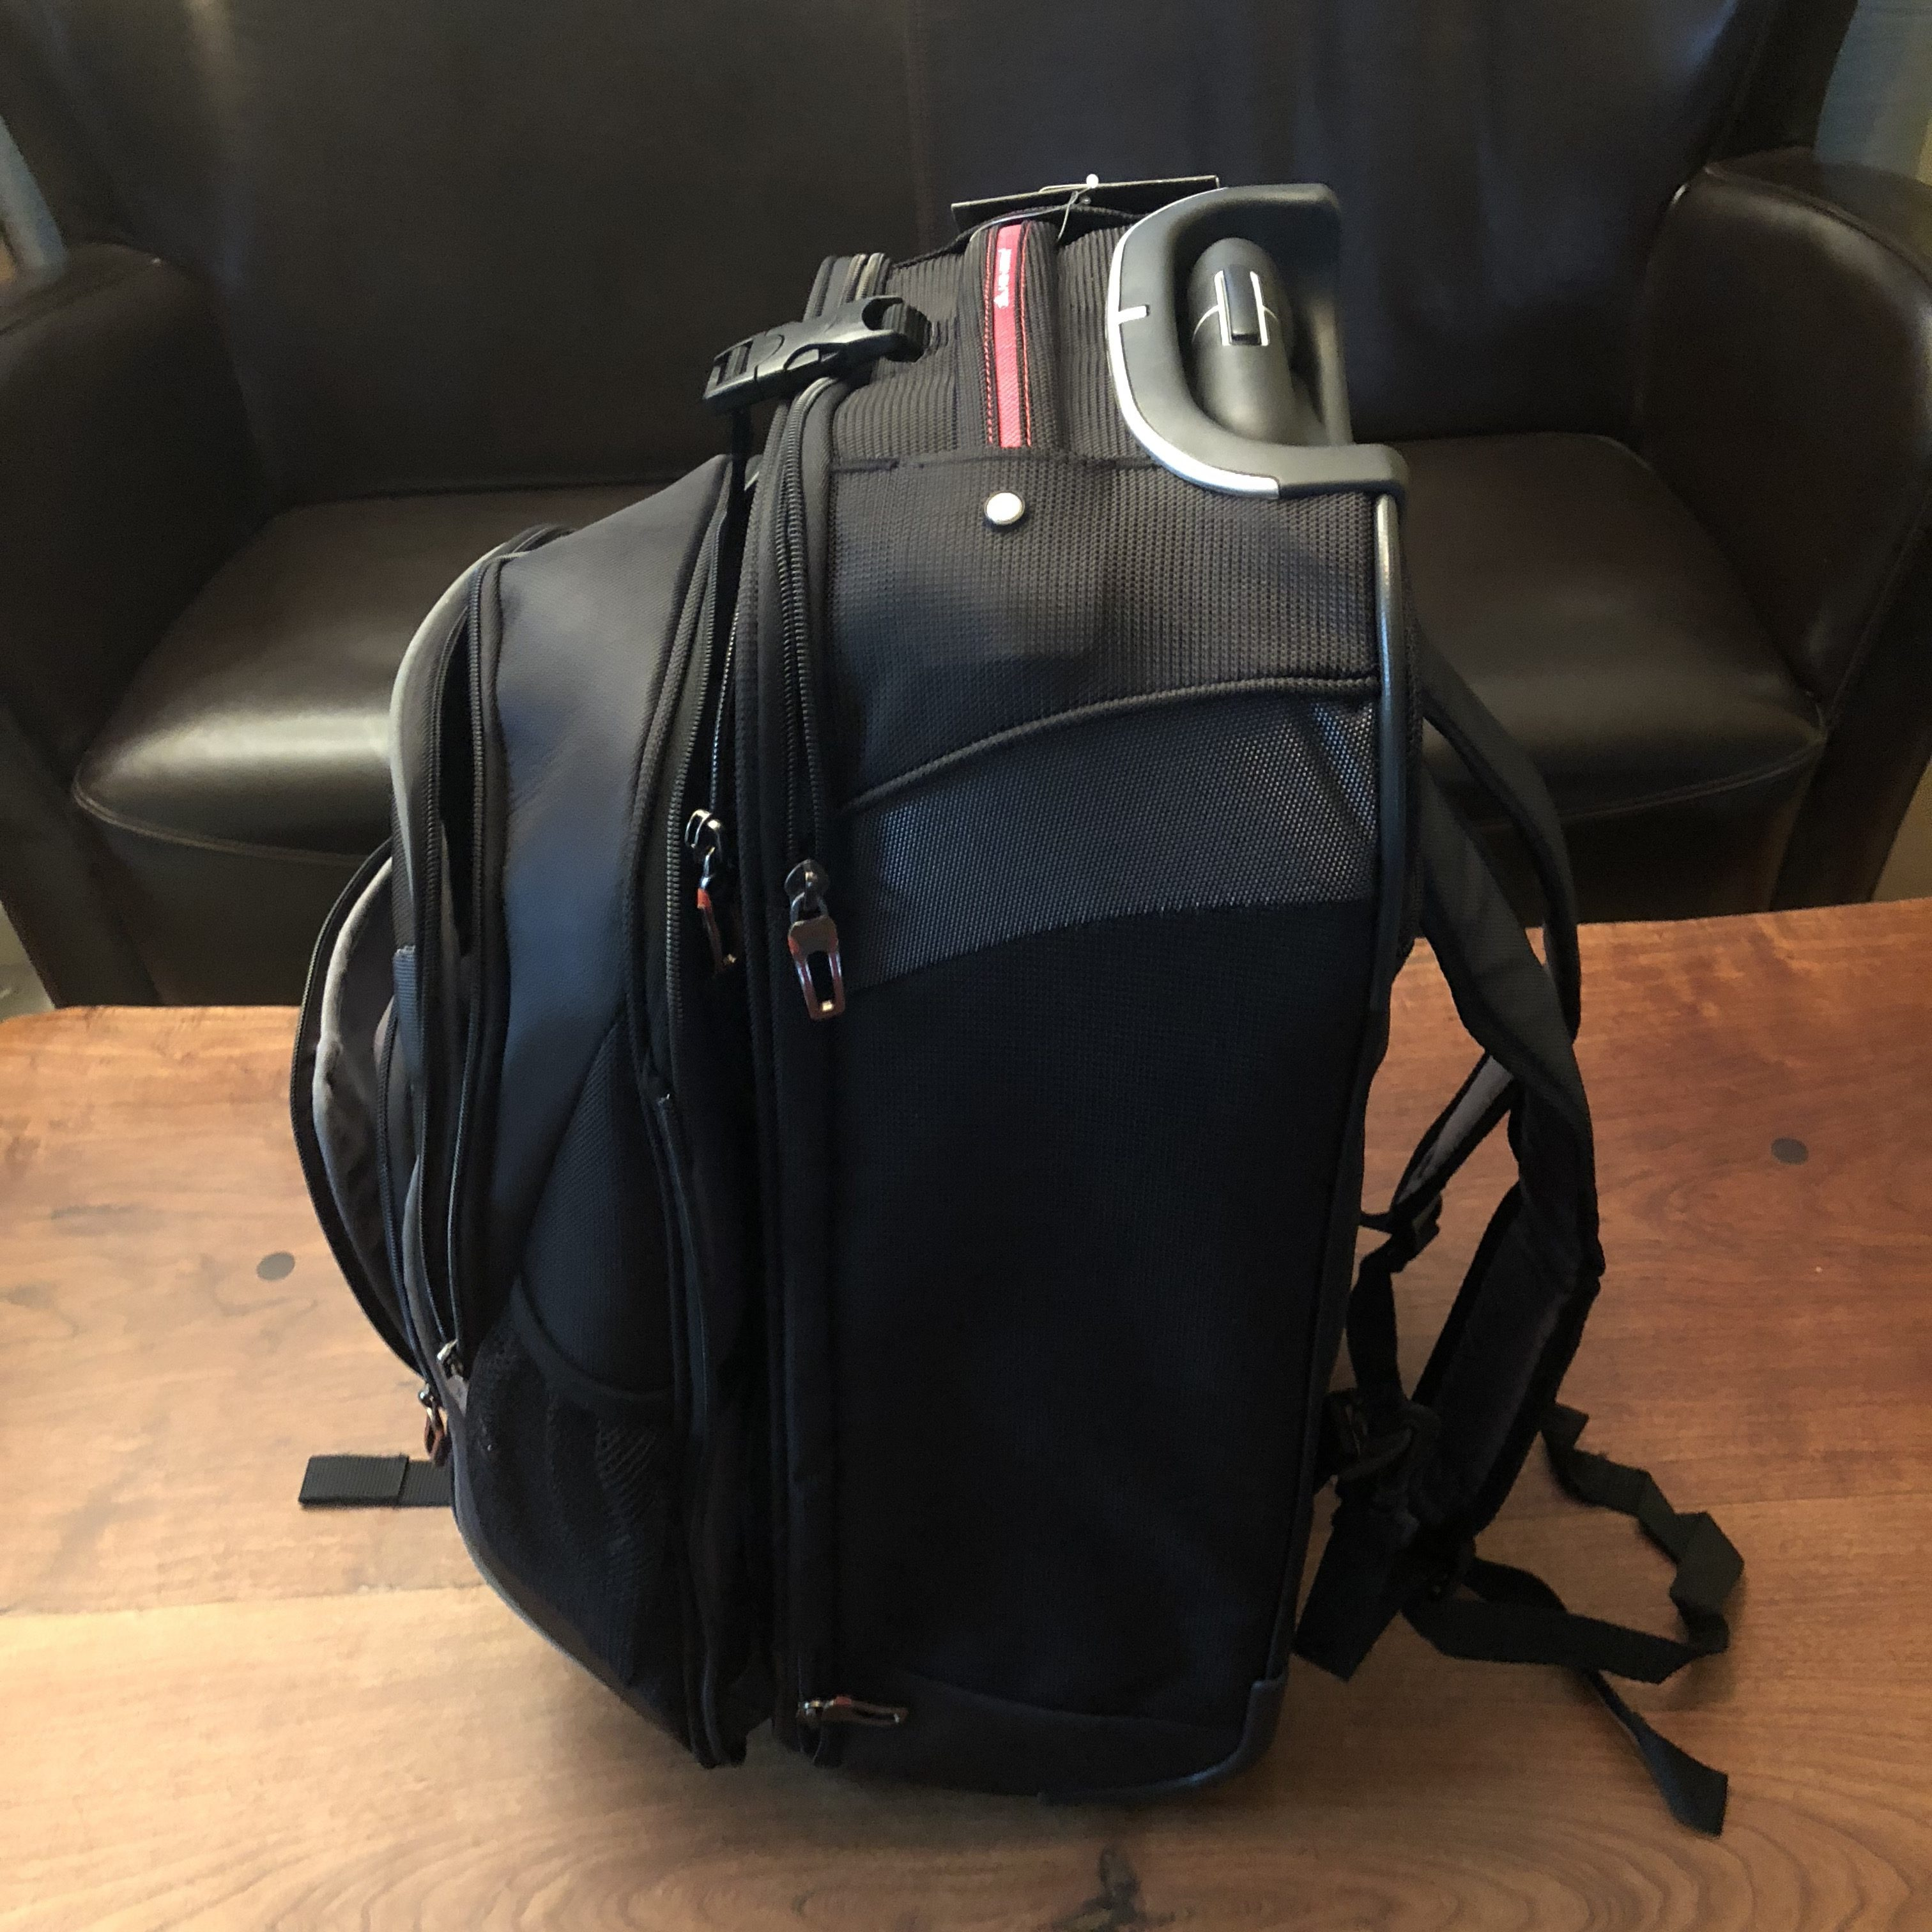 bd0e09339 High Sierra AT7 Carry-On Wheeled Backpack Review - Top5